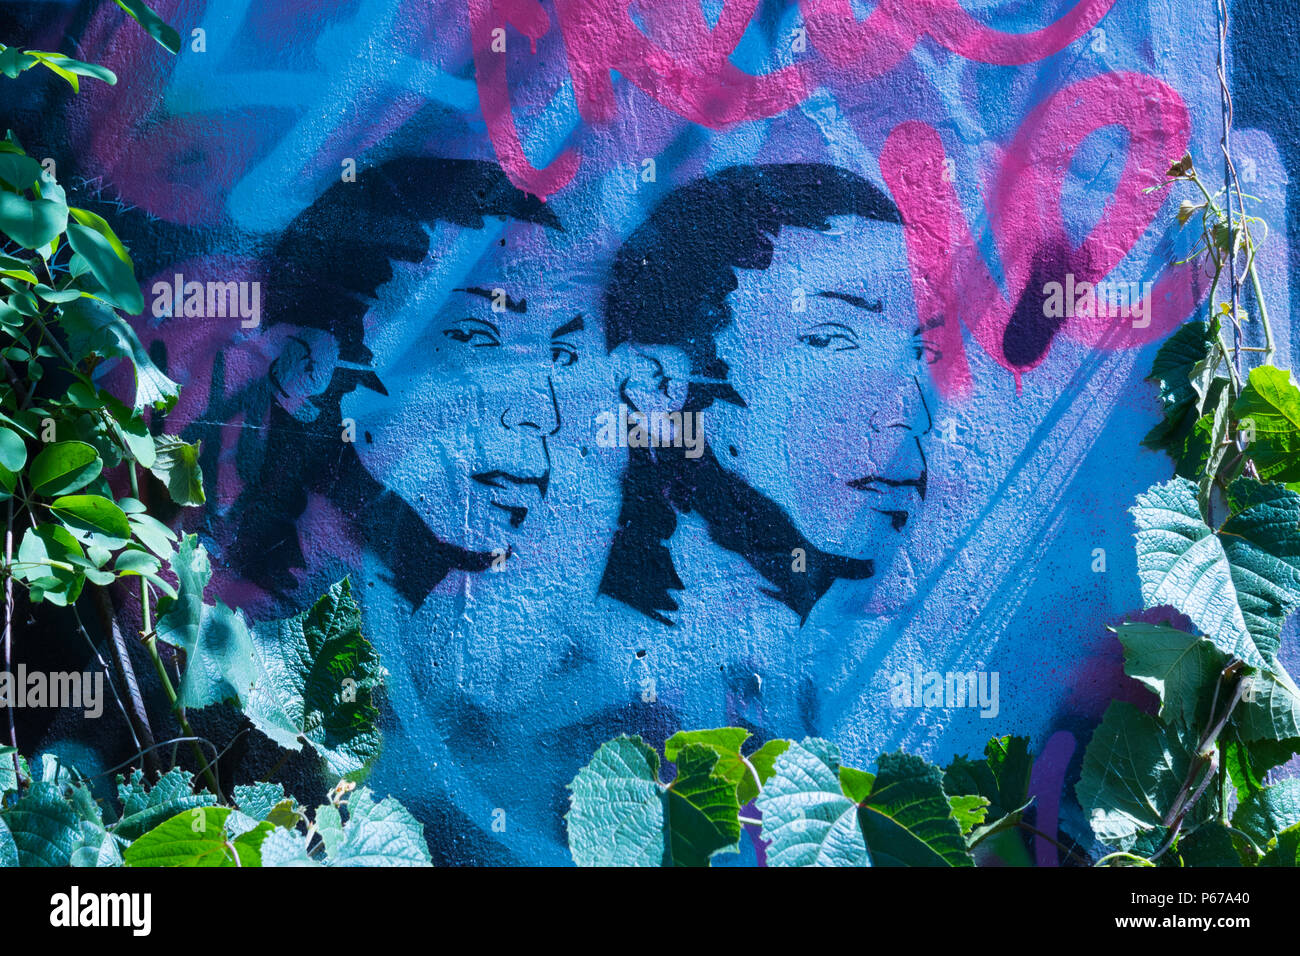 London Waterloo Leake Street graffiti blue 2 two ethnic heads faces leaf leaves silhouettes - Stock Image